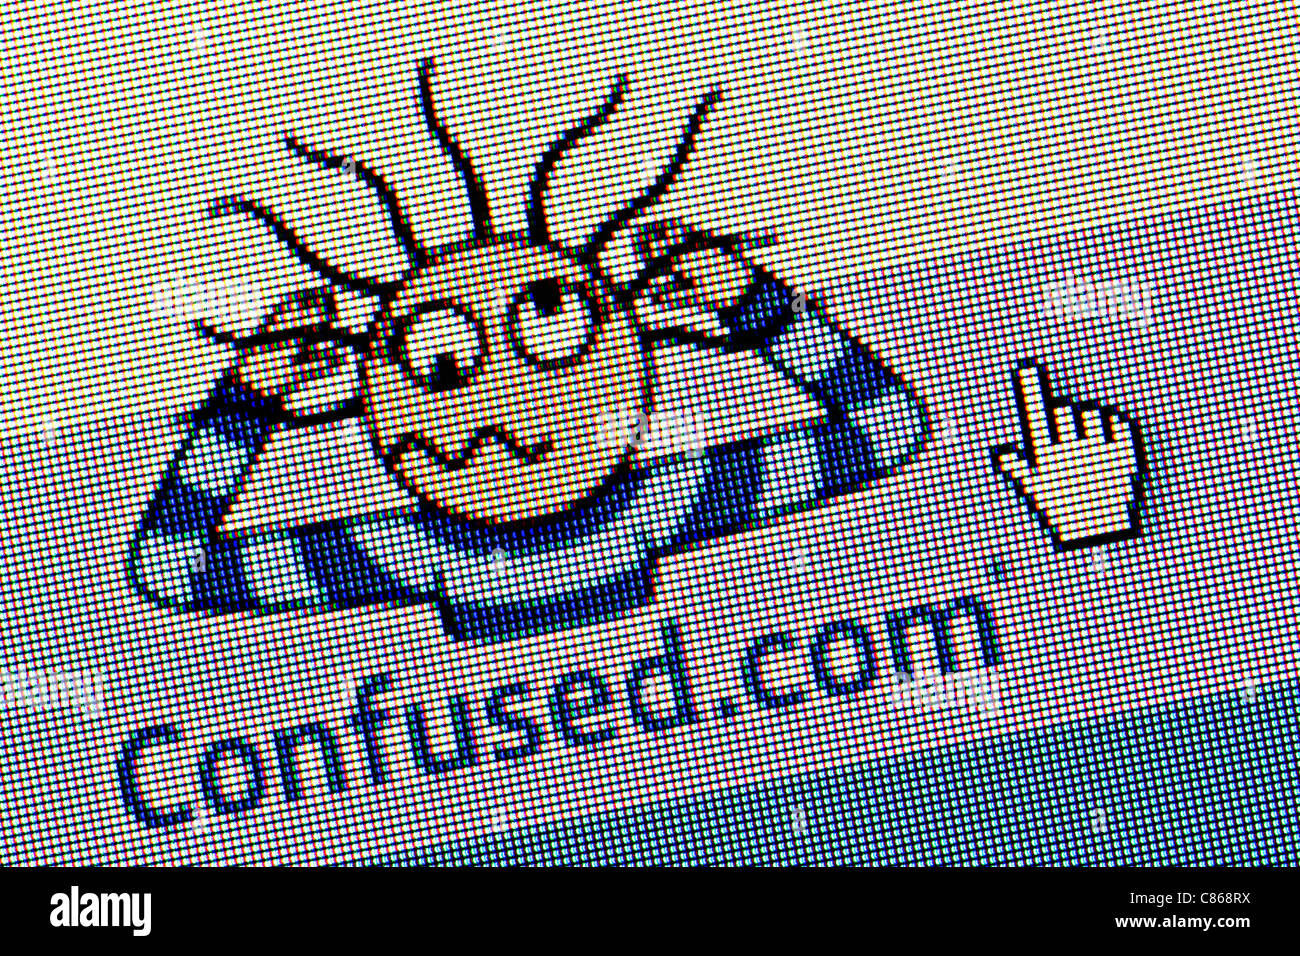 Confused.com logo and website close up - Stock Image